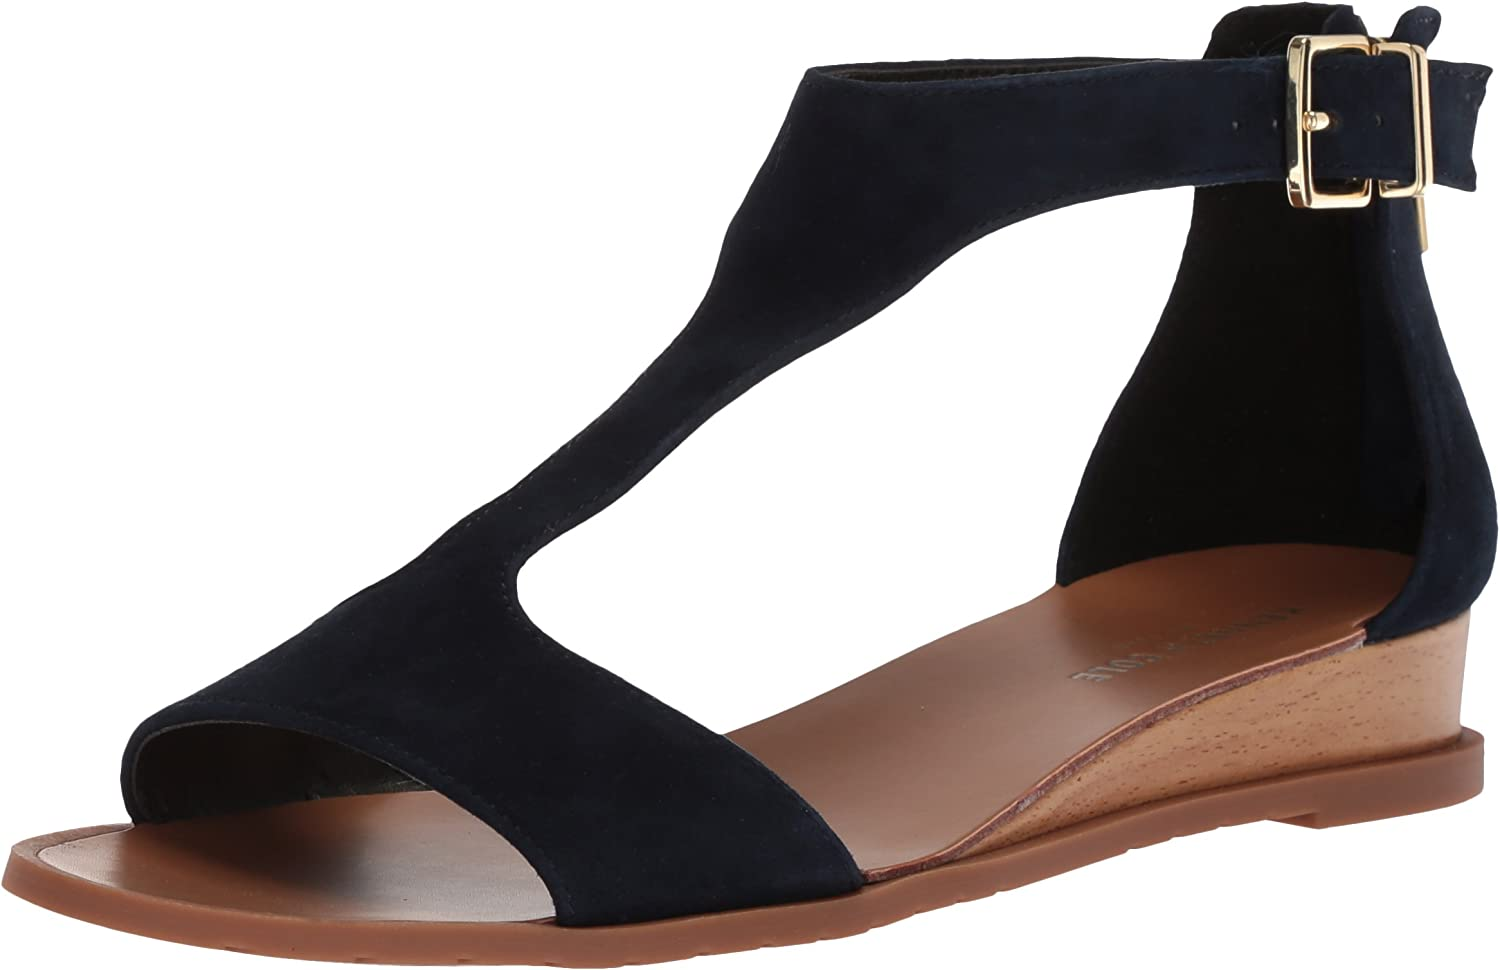 Kenneth Cole New York Womens Judd Low Wedge T-Strap Sandal Wedge Sandal